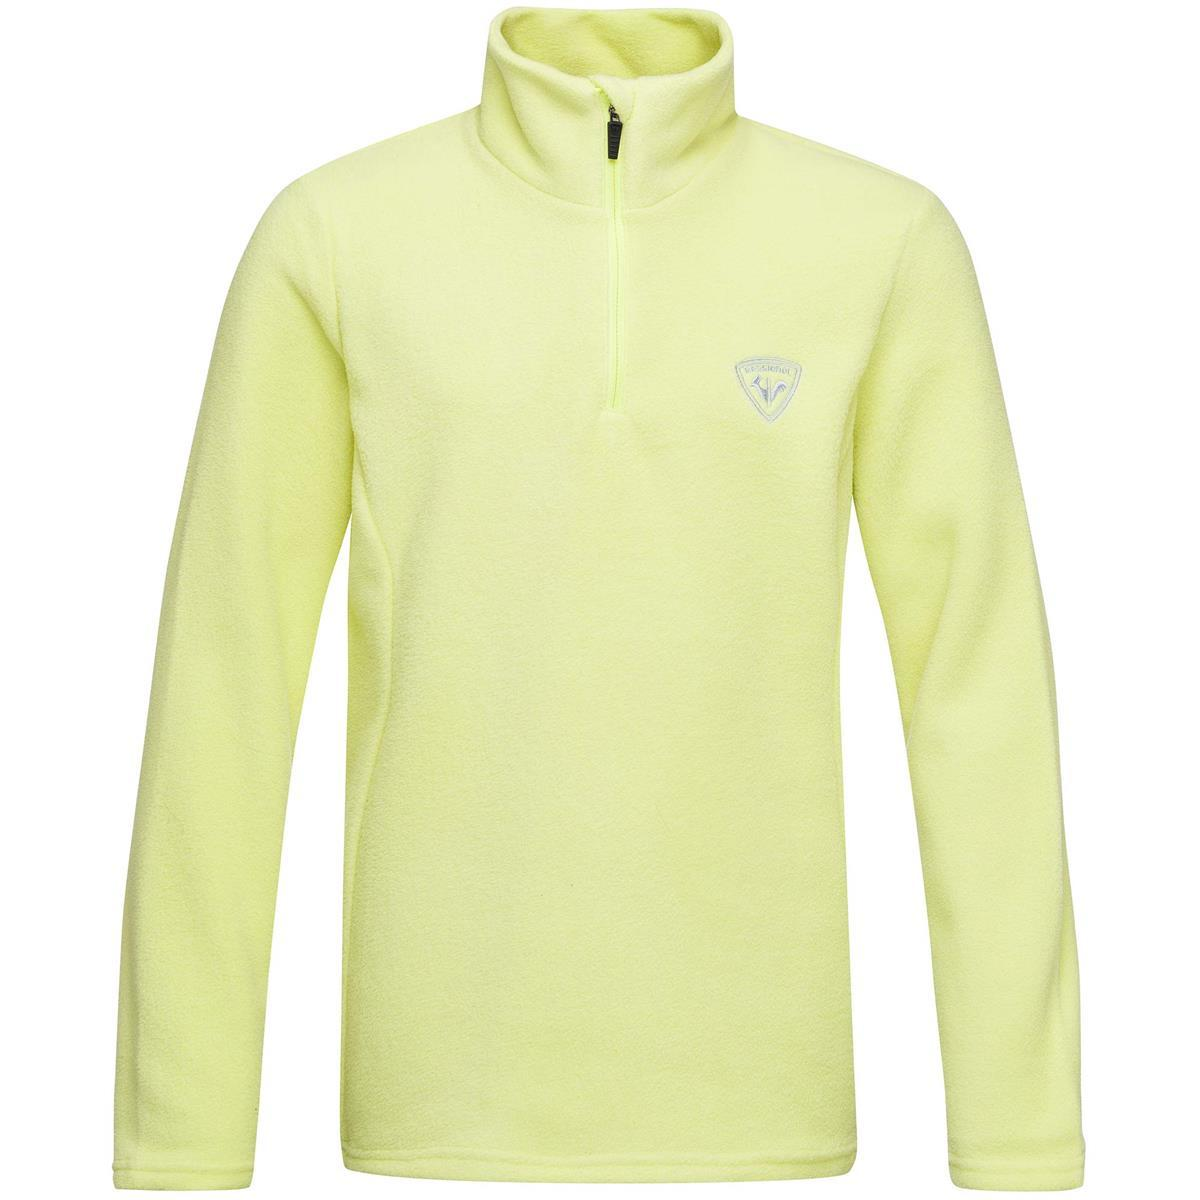 Rossignol Apparel Girl 1/2 Zip Fleece